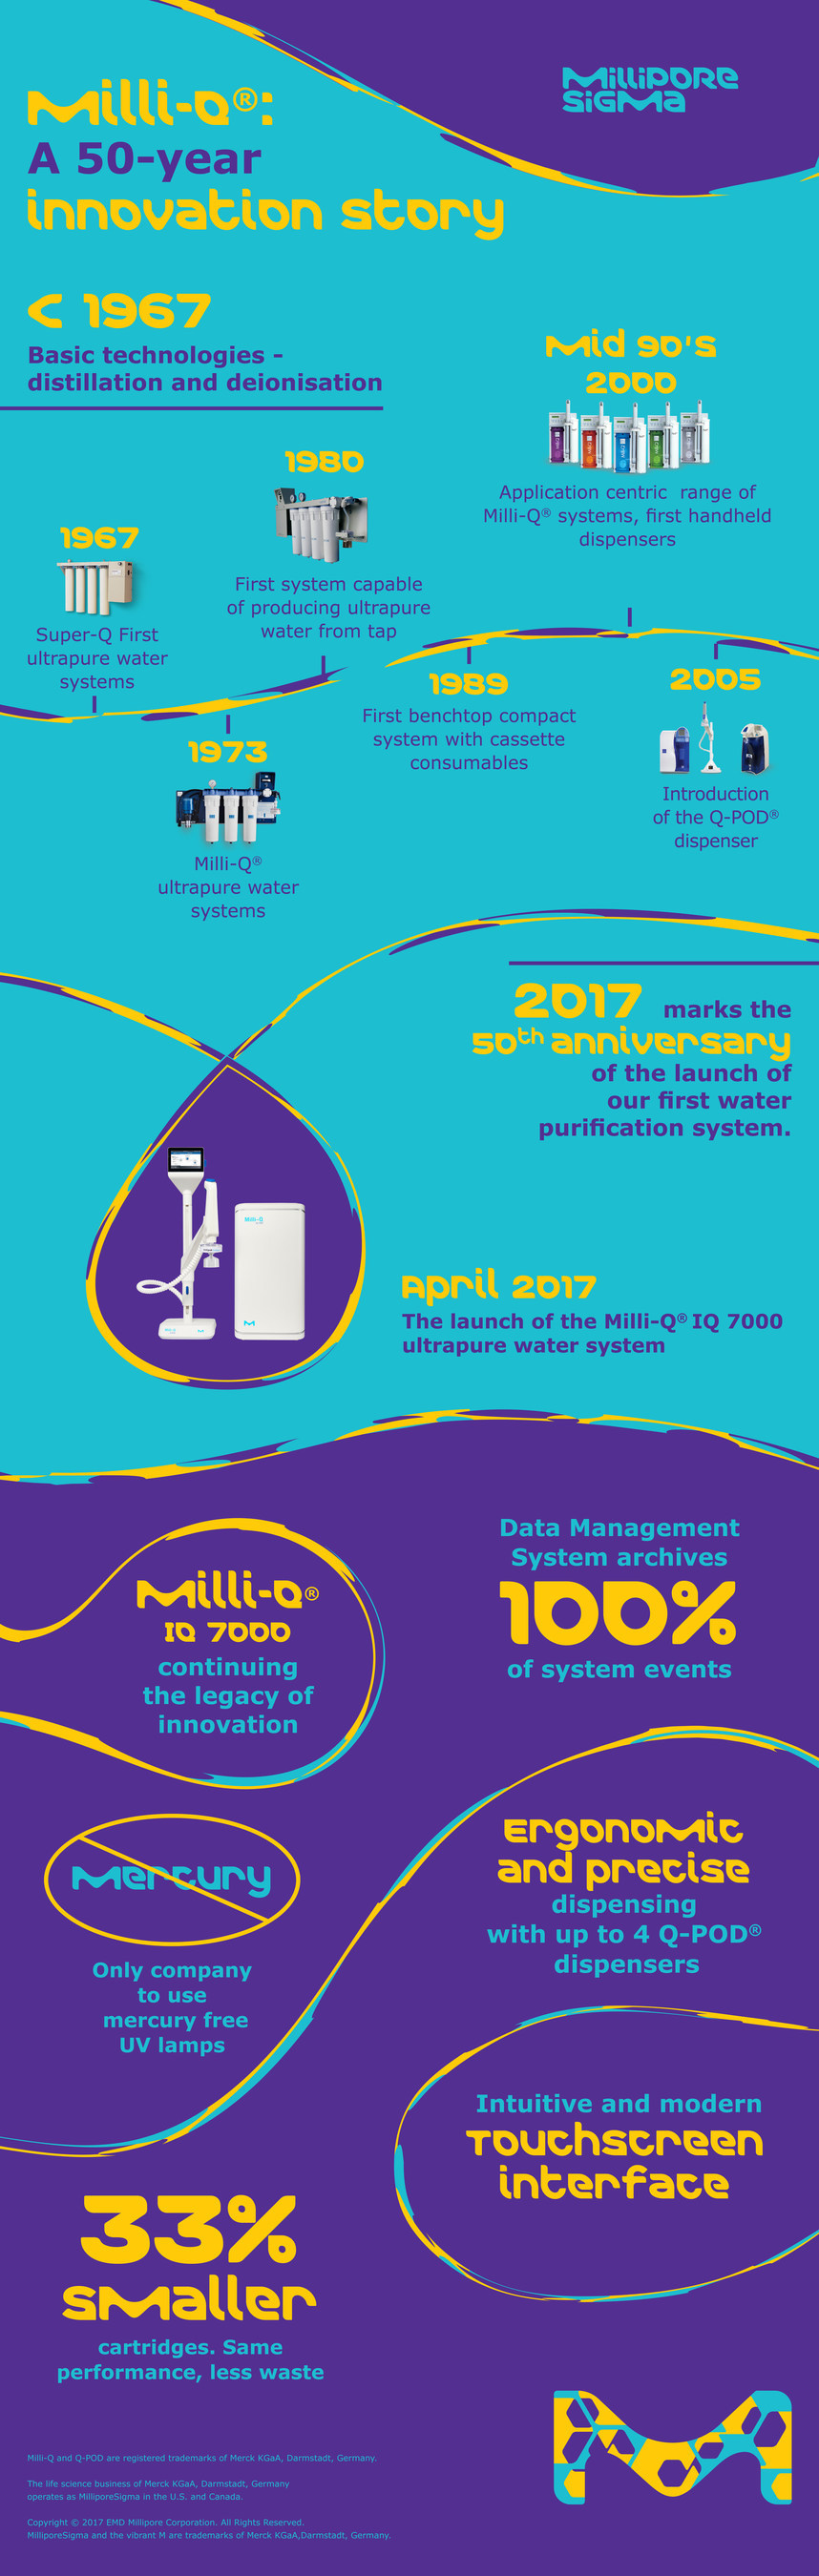 MilliporeSigma's launch of the Milli-Q(R) IQ 7000 lab water purification system marks 50th anniversary of the company's first lab water system launch. This system is the first to use environmentally friendly, mercury-free UV lamps. Its smaller, ergonomic design reduces waste and helps increase productivity and accelerate research for scientists in the lab.